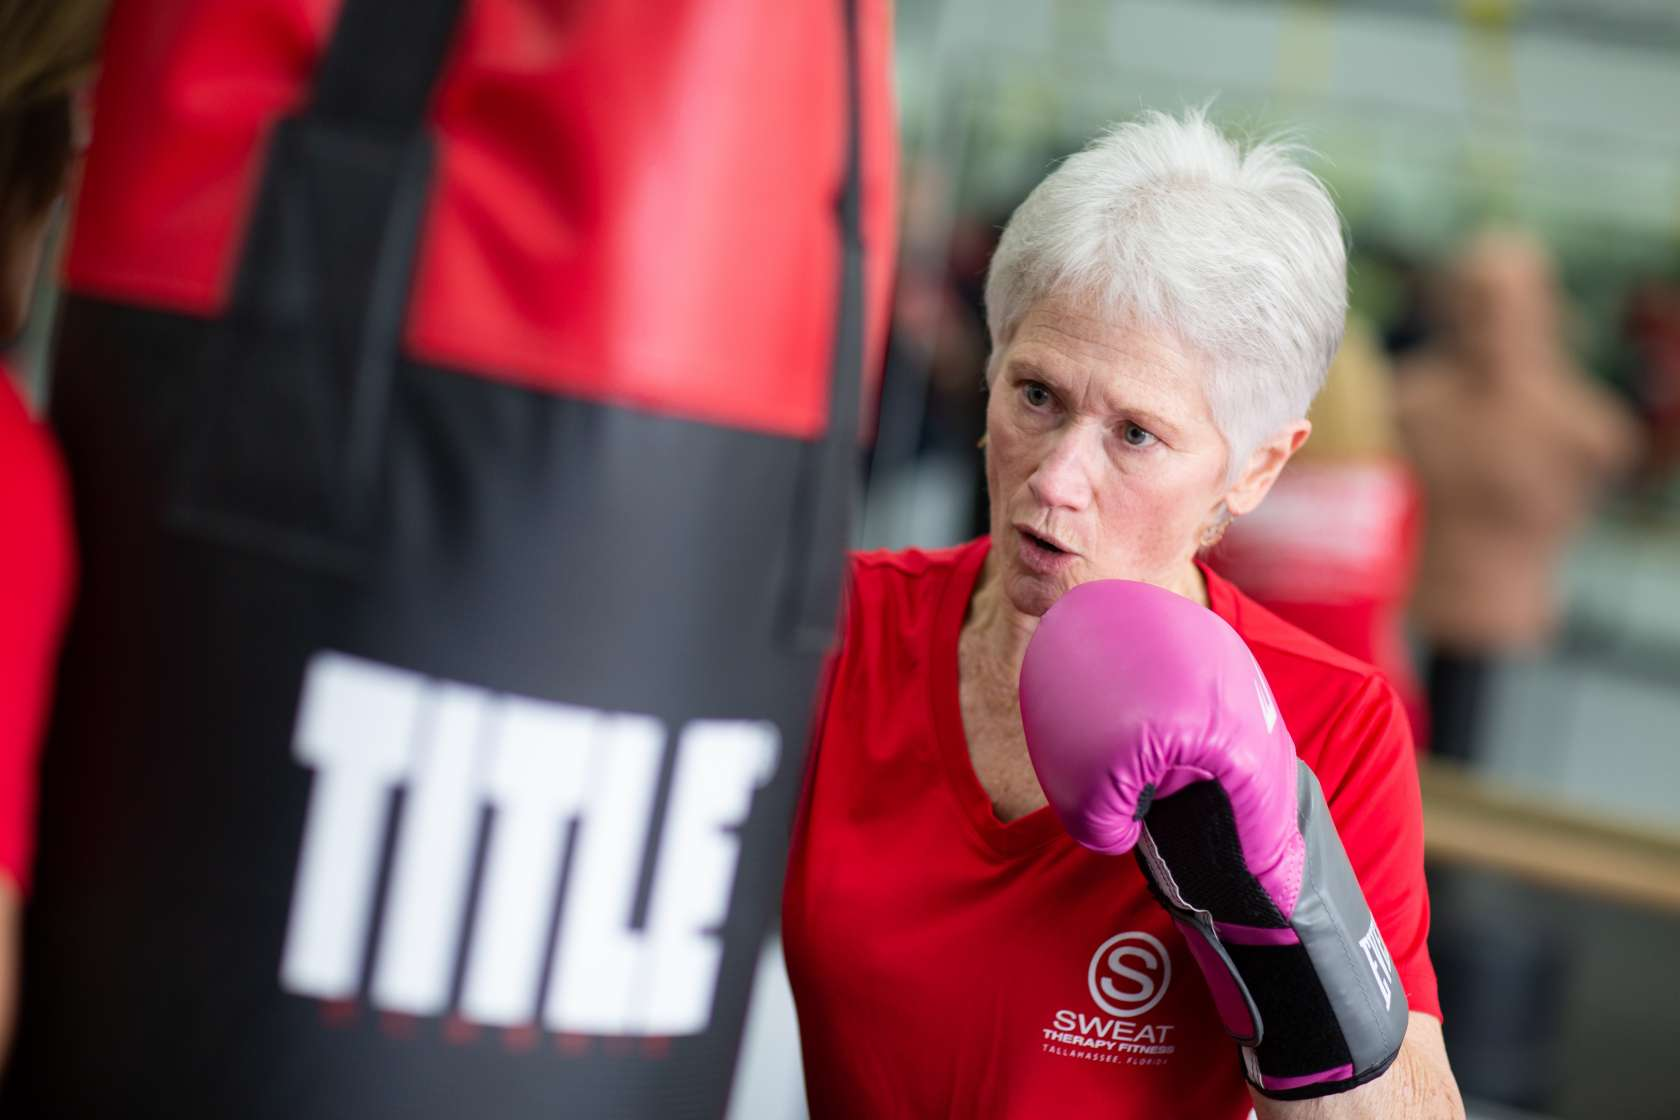 UF Health patient Judith Barrett spars in a boxing class against a bag.